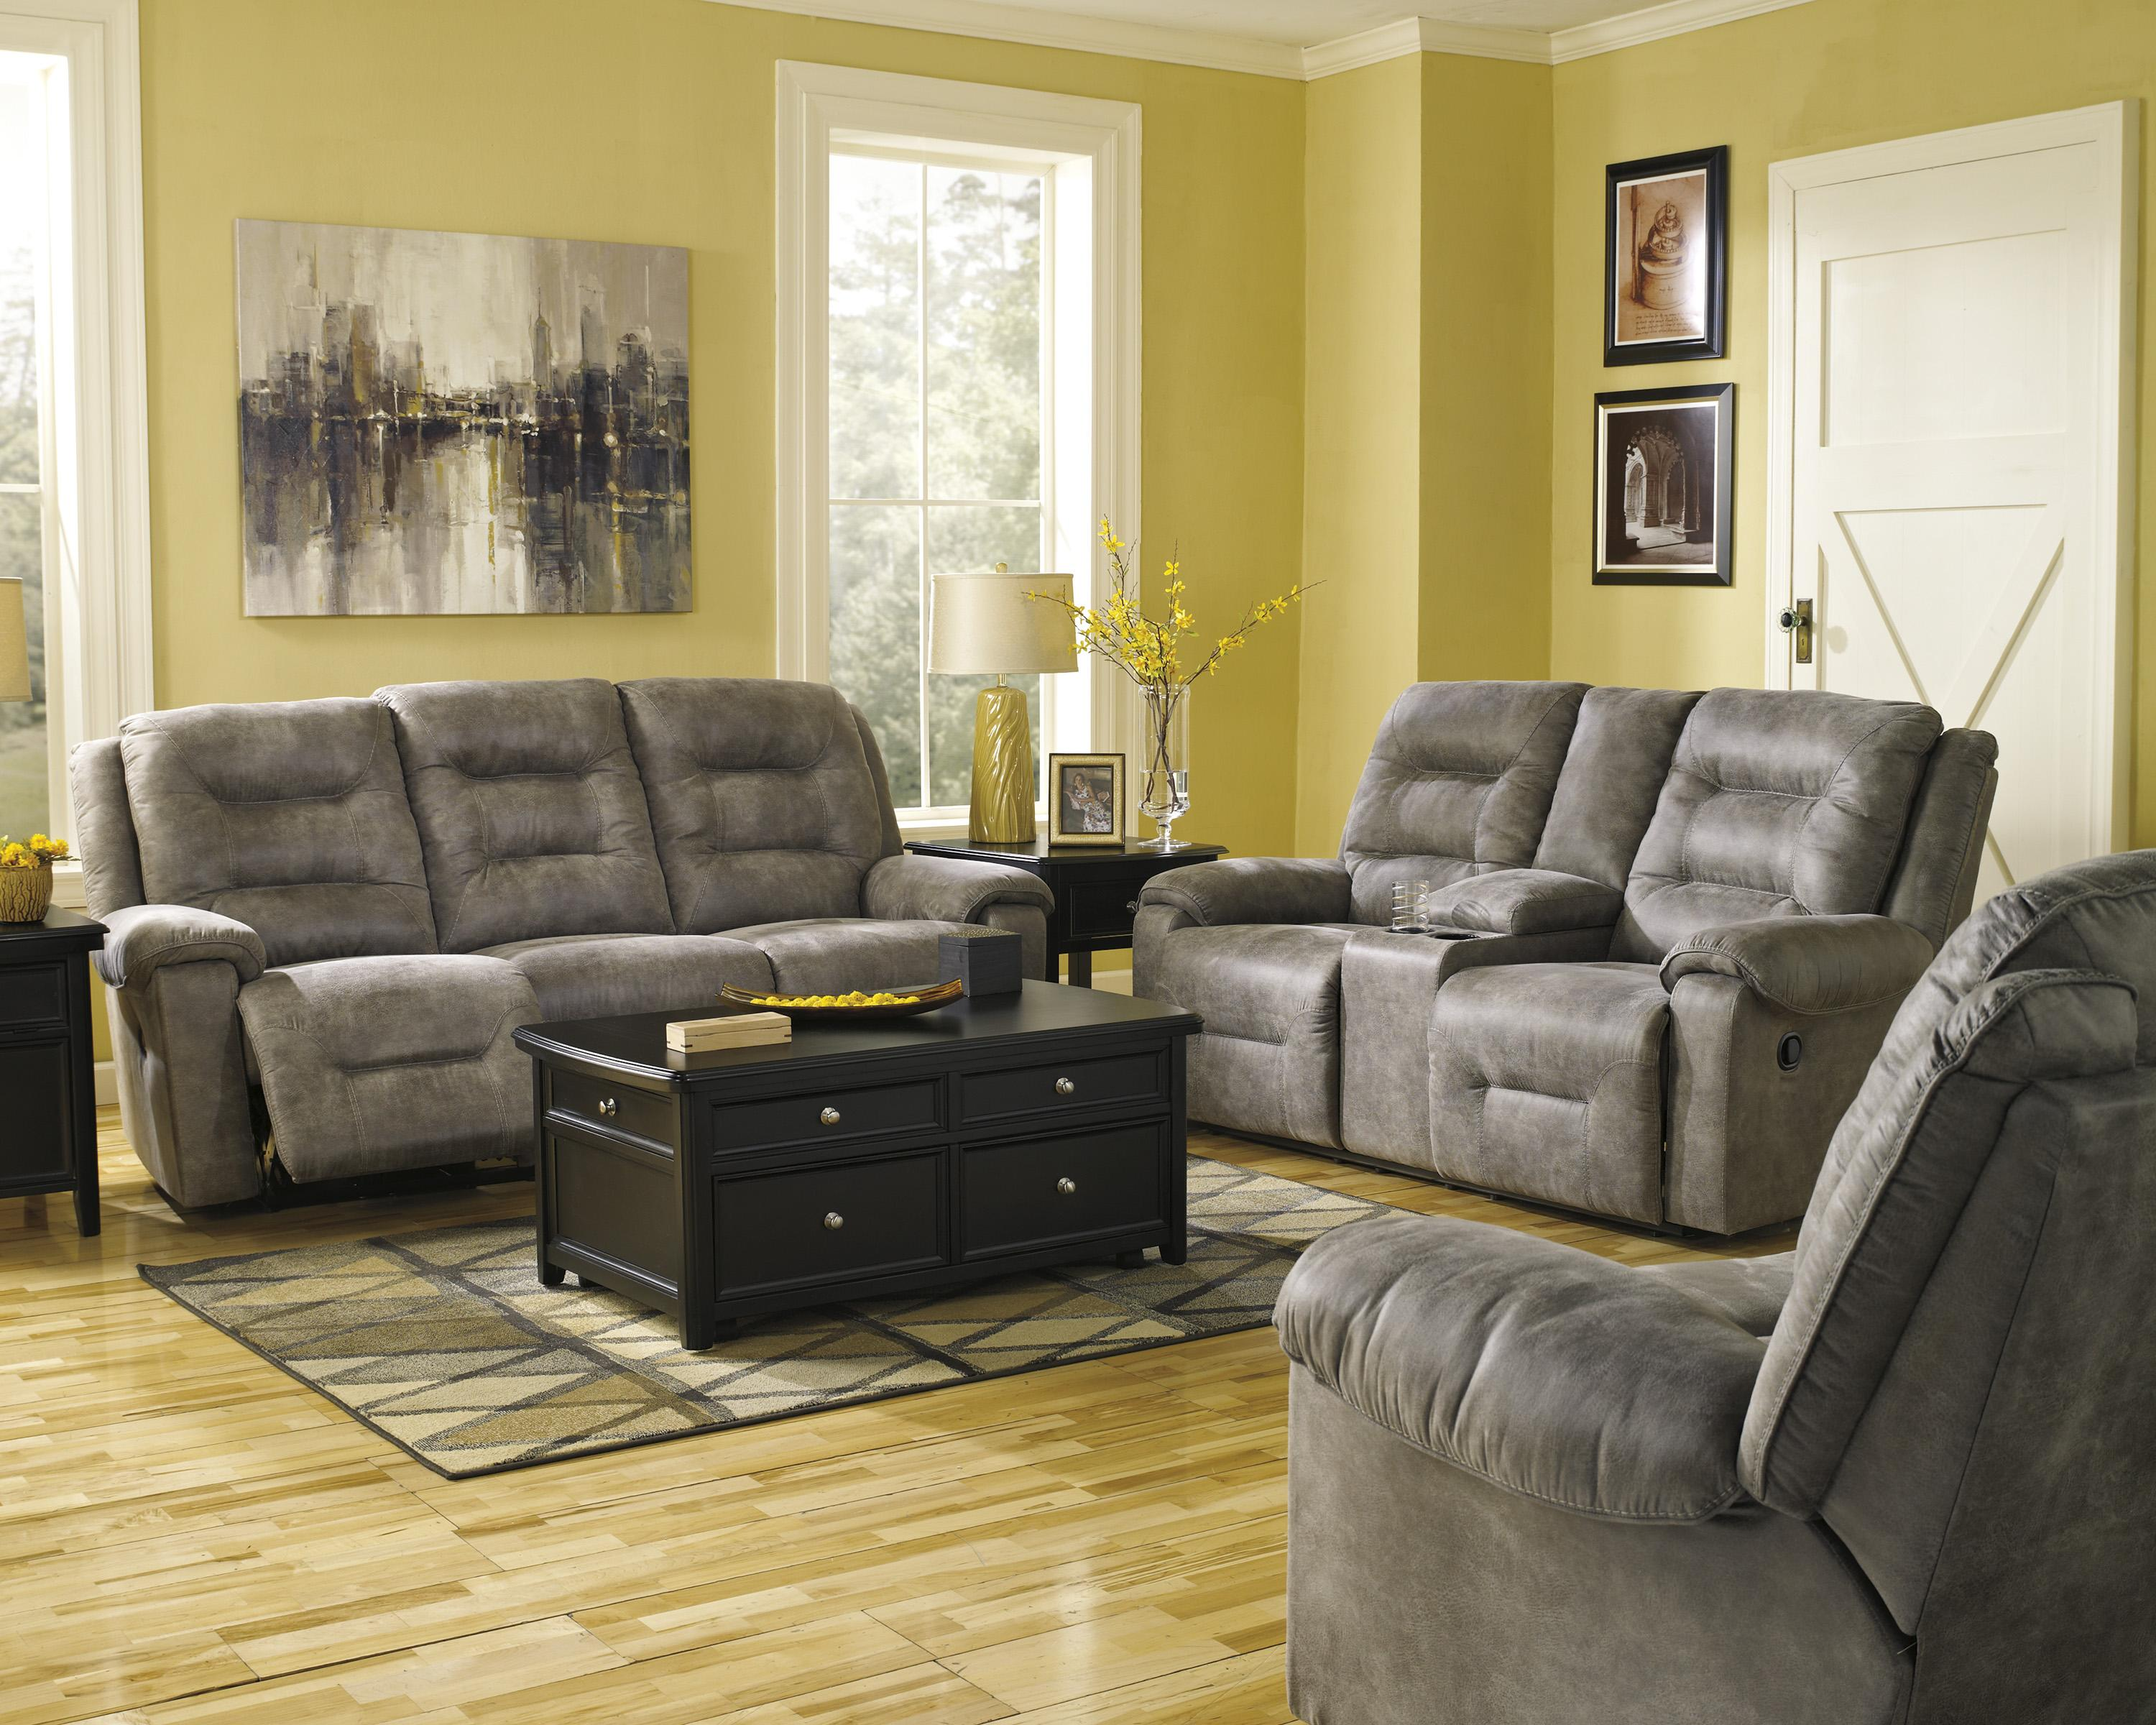 Signature Design by Ashley Rotation - Smoke Reclining Living Room Group - Item Number: 97501 Living Room Group 2